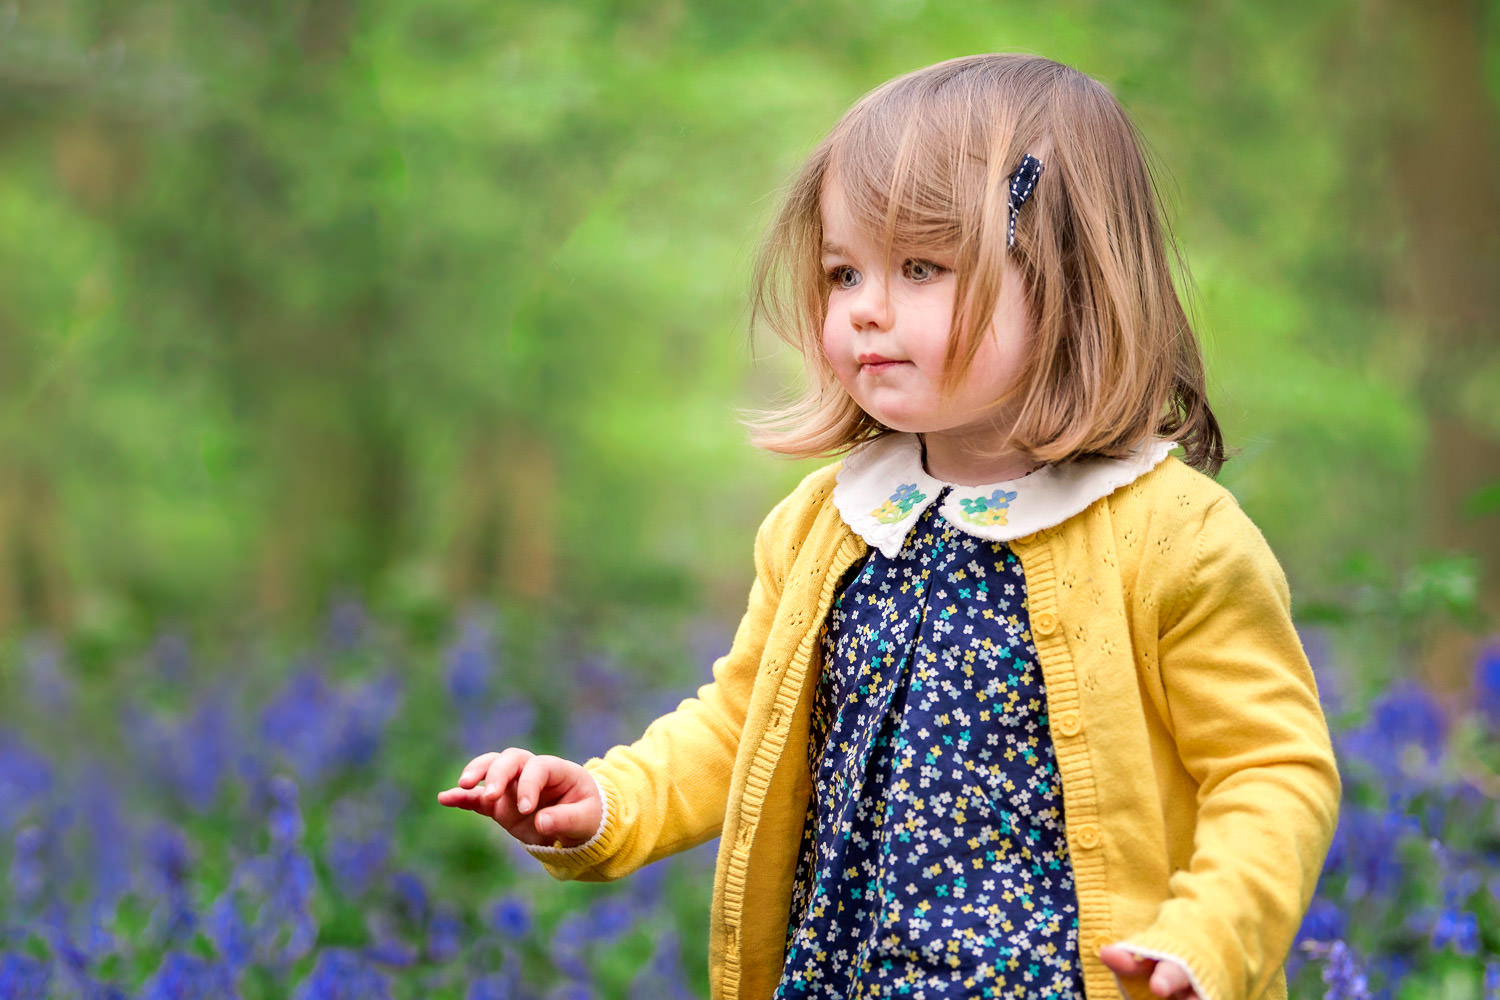 toddler girl walking in bluebells with yellow cardigan during family bluebell shoot